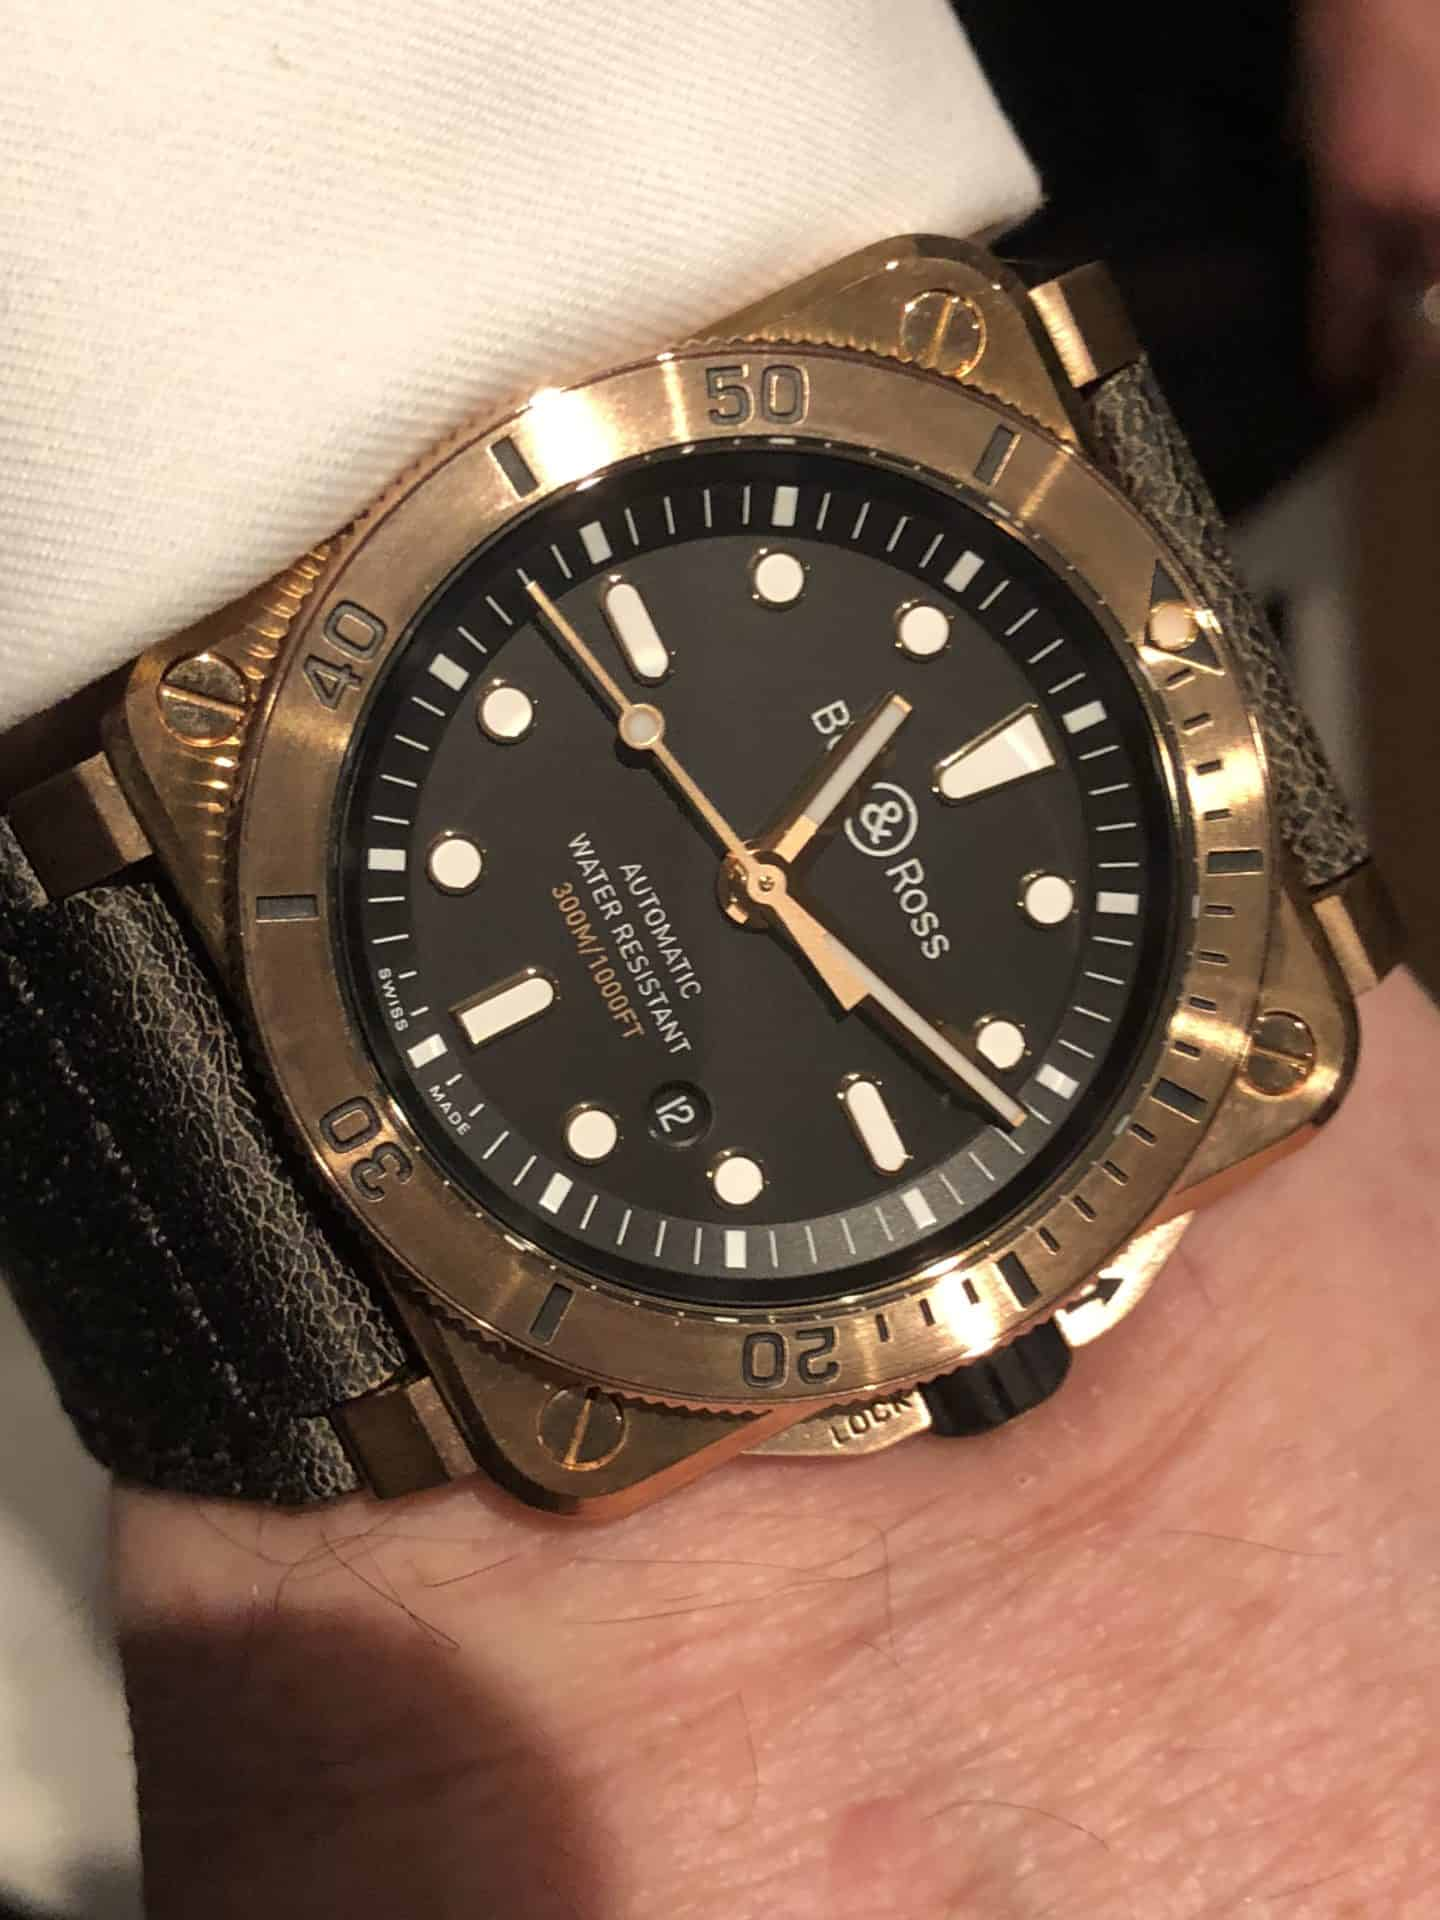 Bell&Ross_Diver_Bronze_Limited_Edition_2018_01a_Foto_GLB